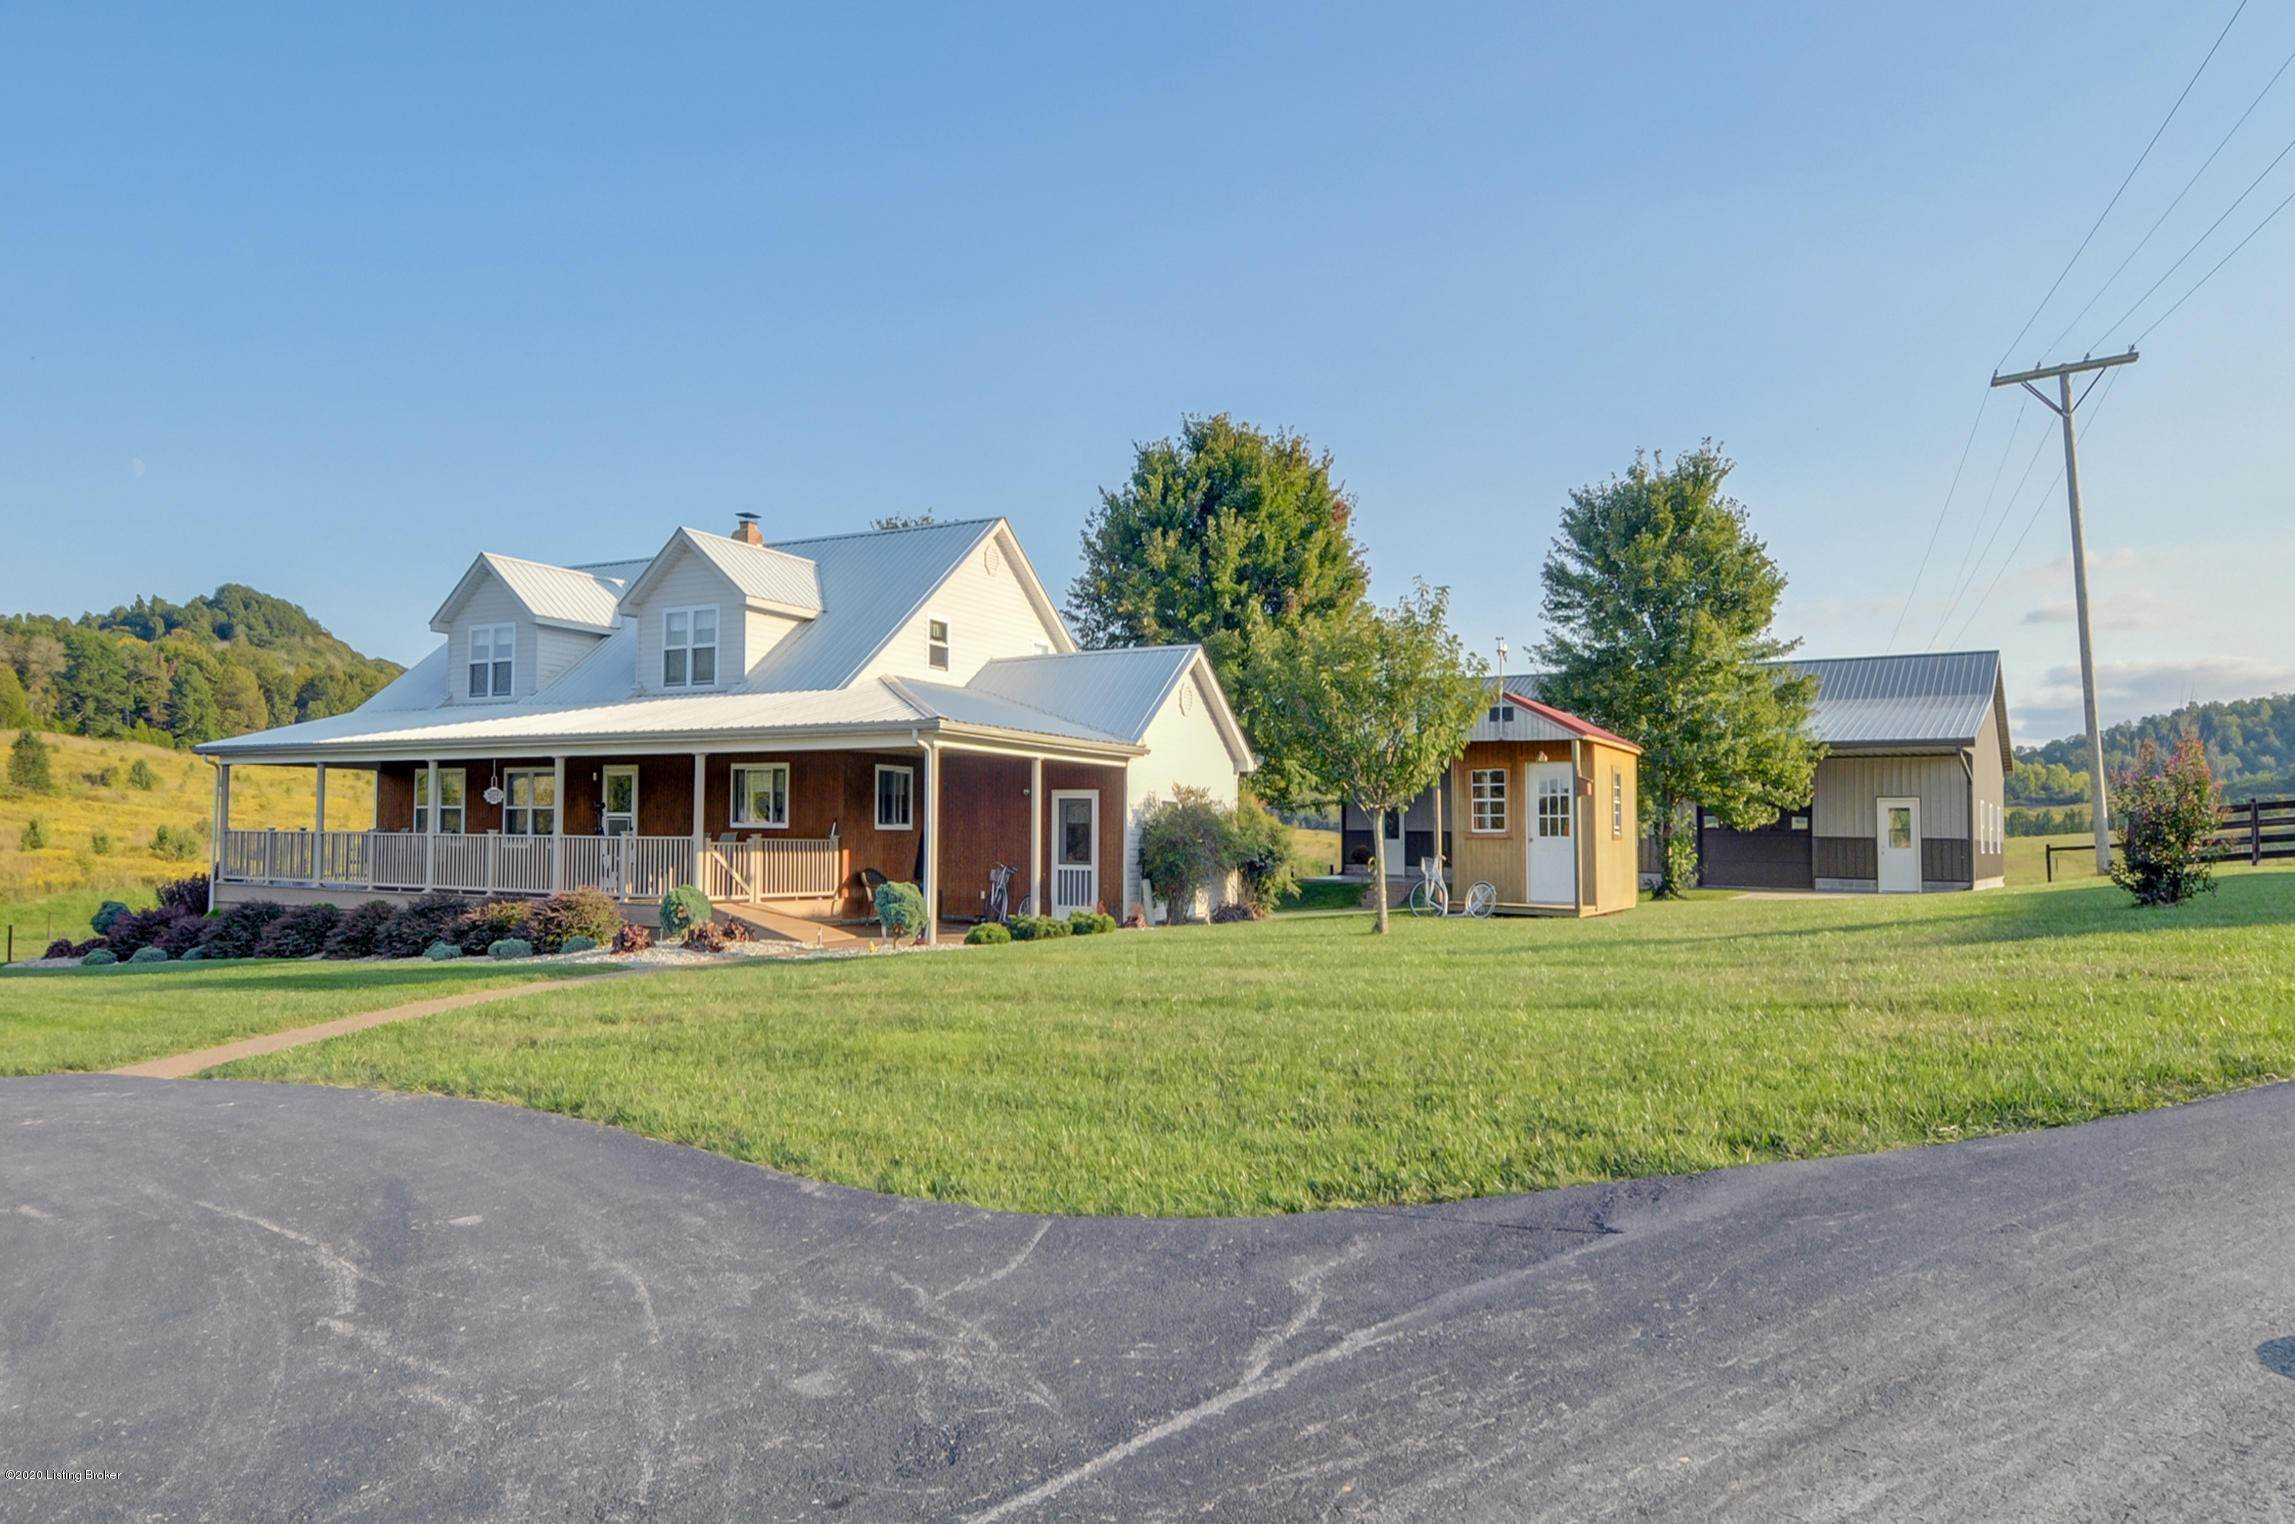 Single Family Homes for Sale at 235 Irvin Cemetery Road Horse Cave, Kentucky 42749 United States